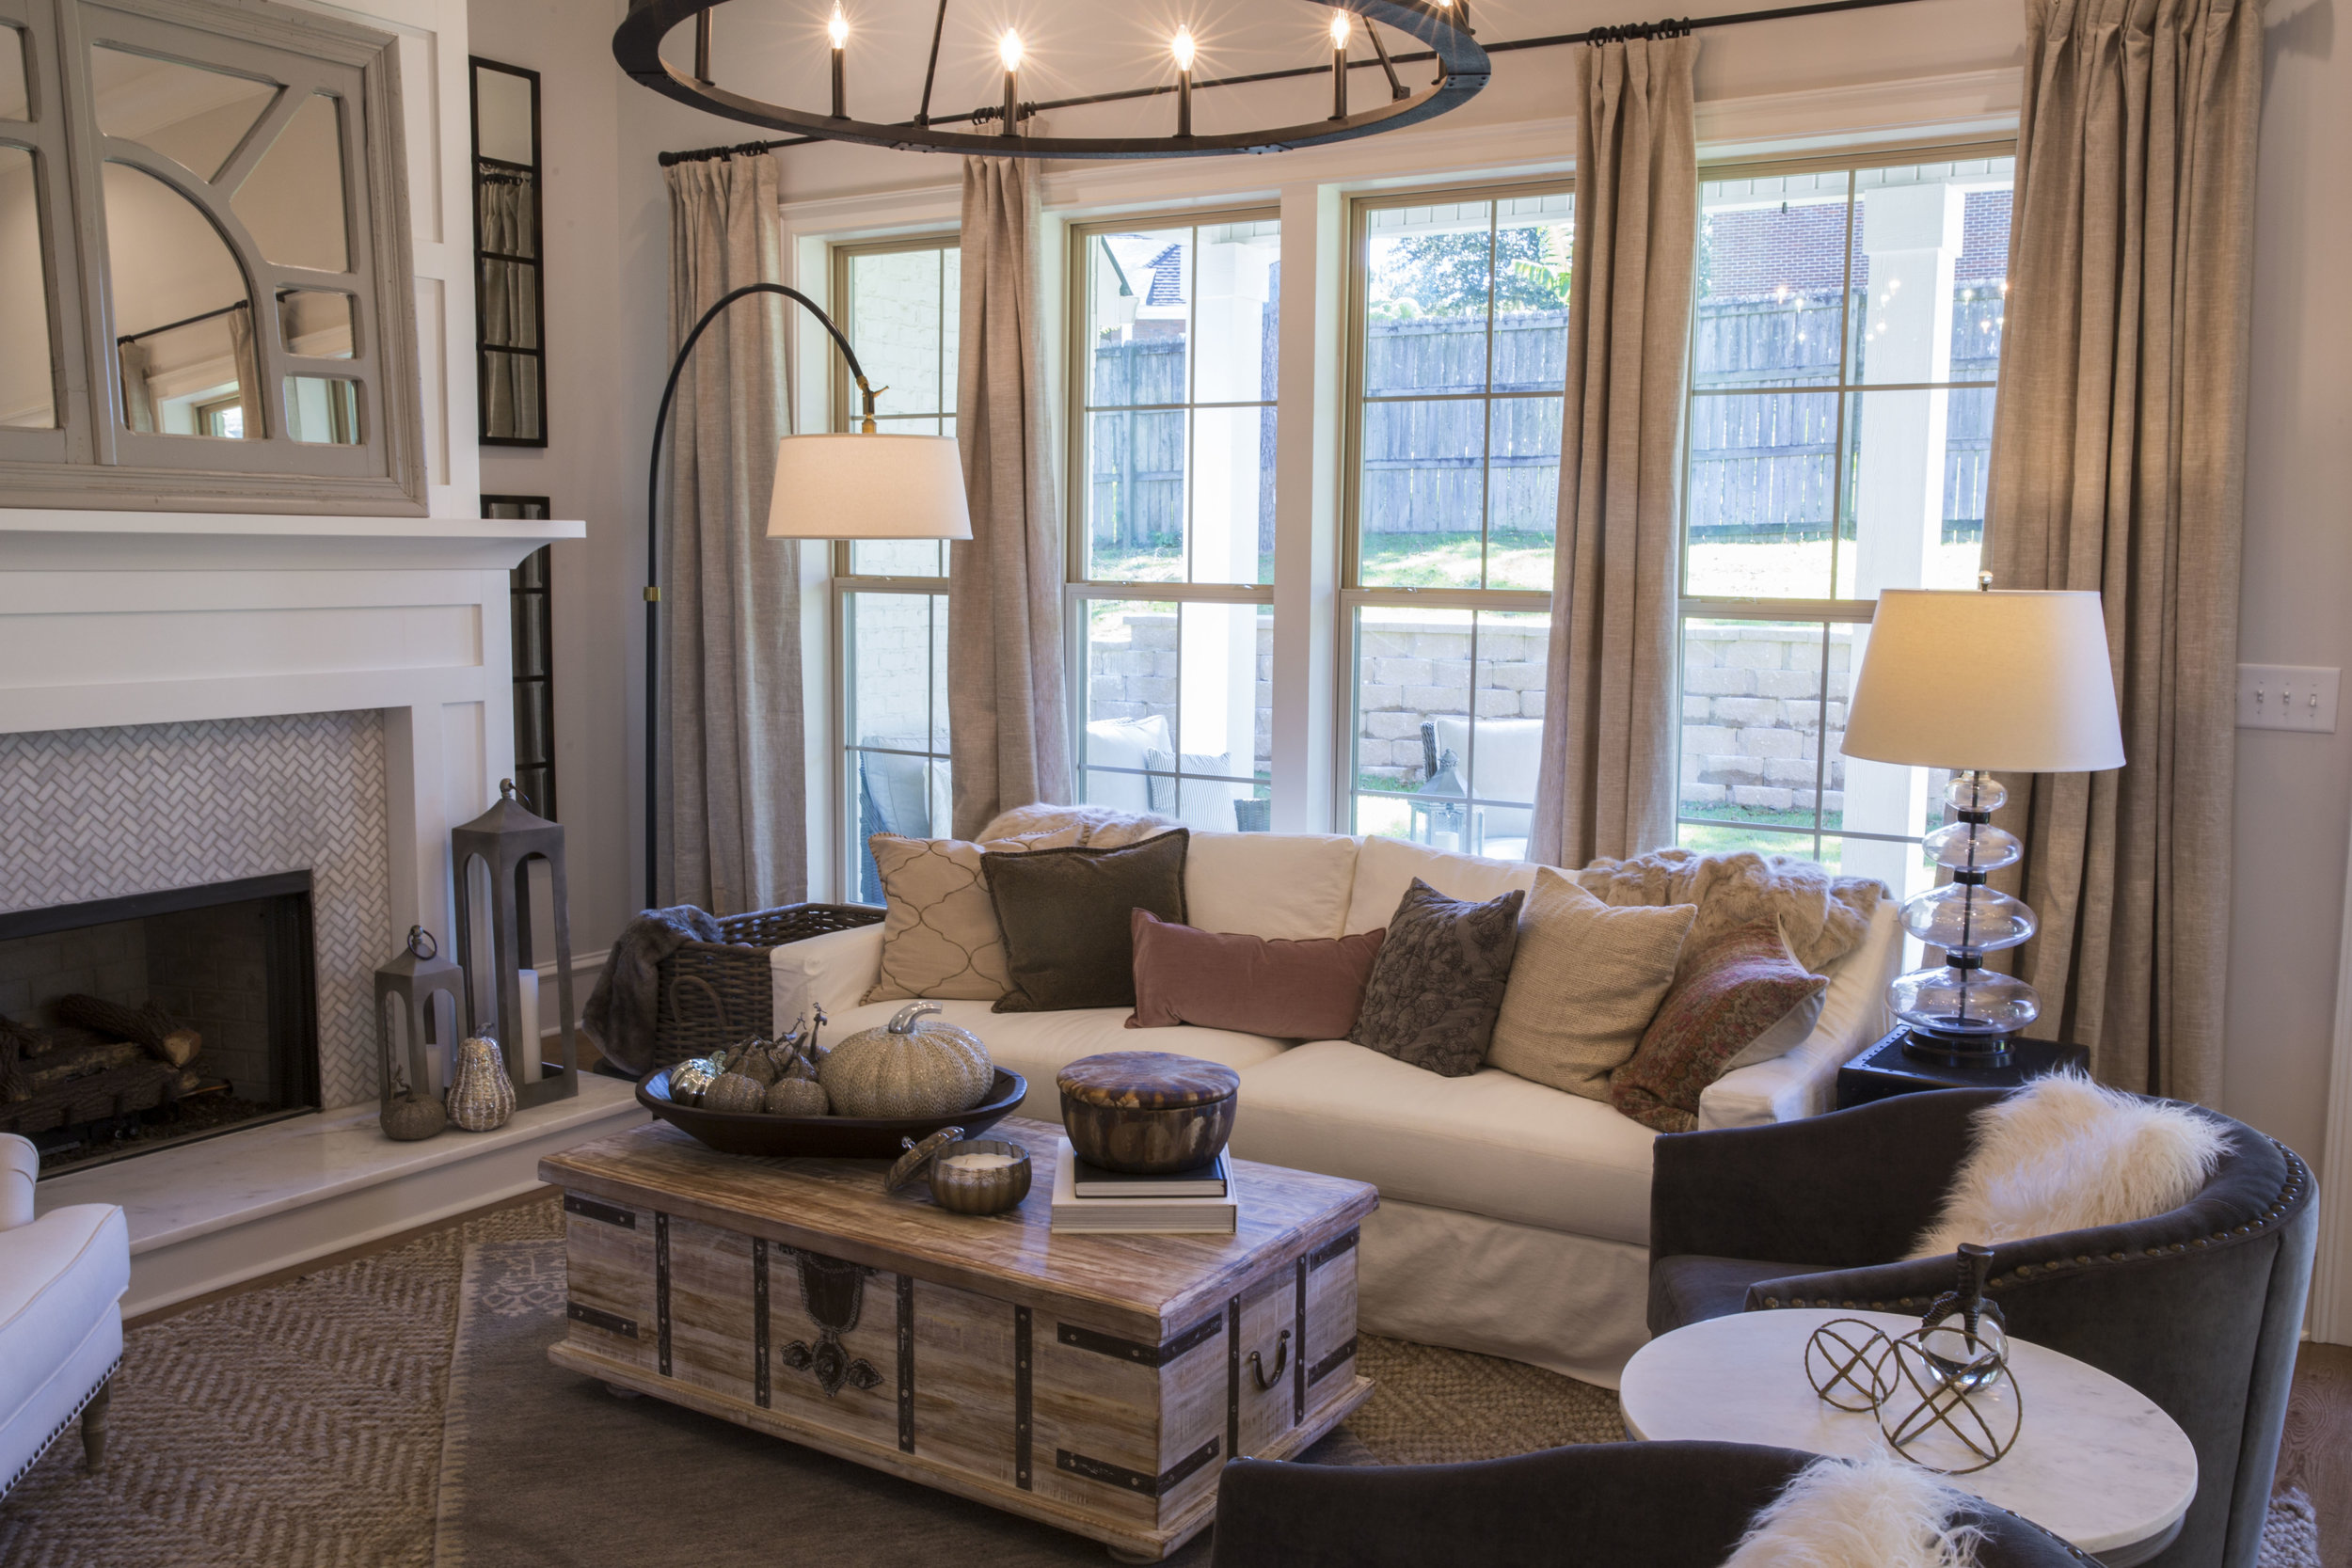 Wynnfield Court Parade of Homes 0r7a7077.jpg